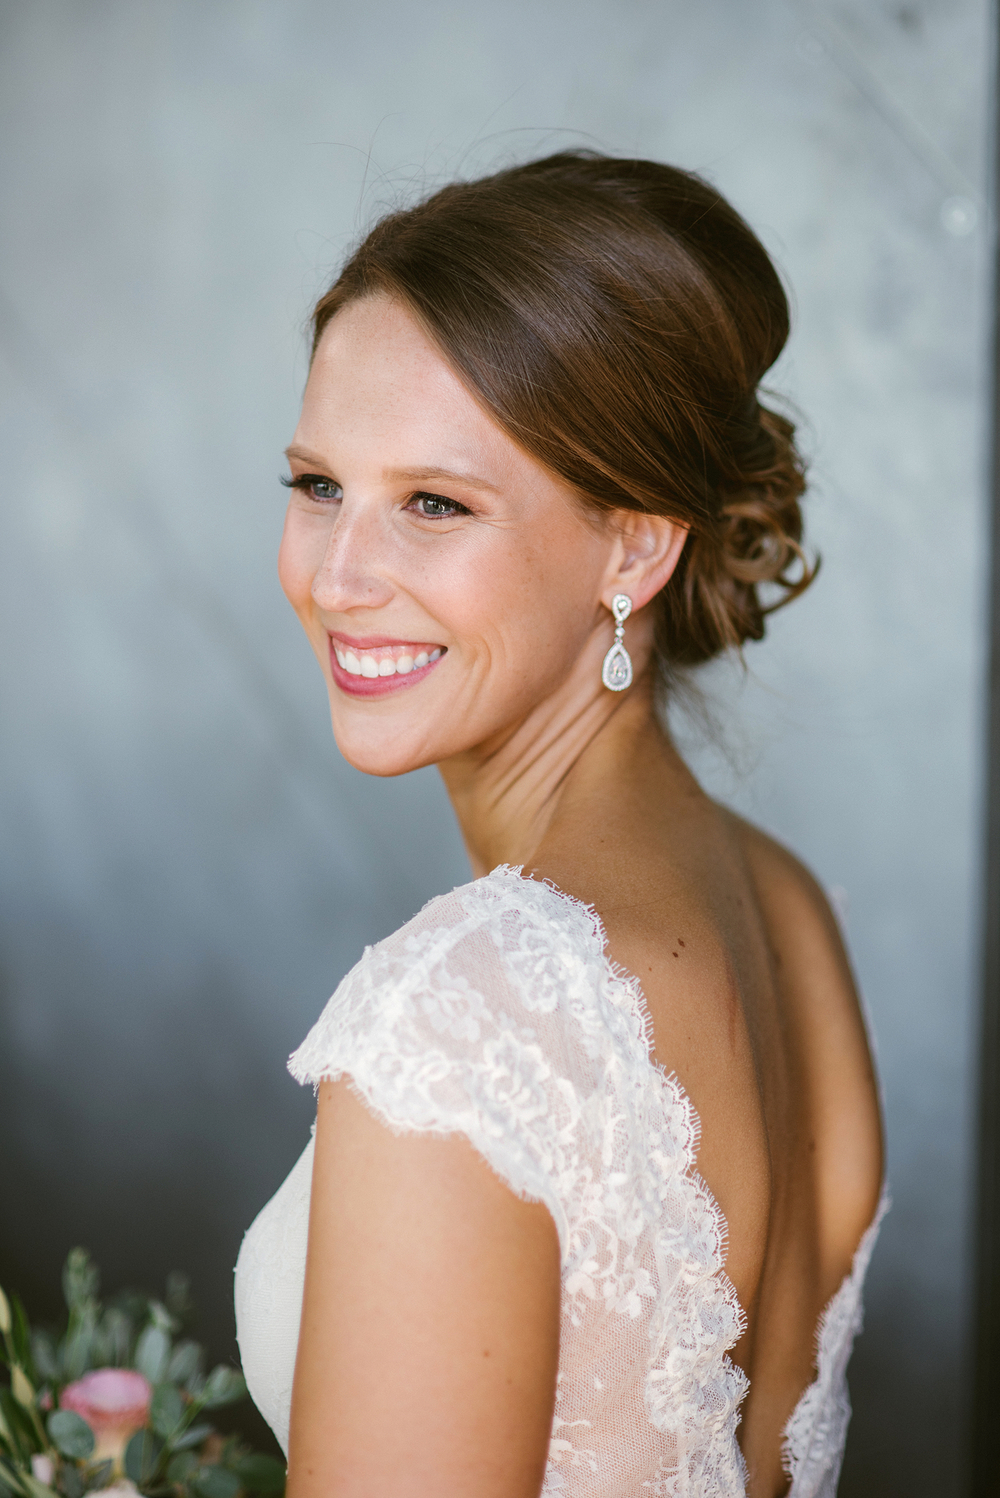 Fremont-Foundry-Beautiful-Bride.jpg